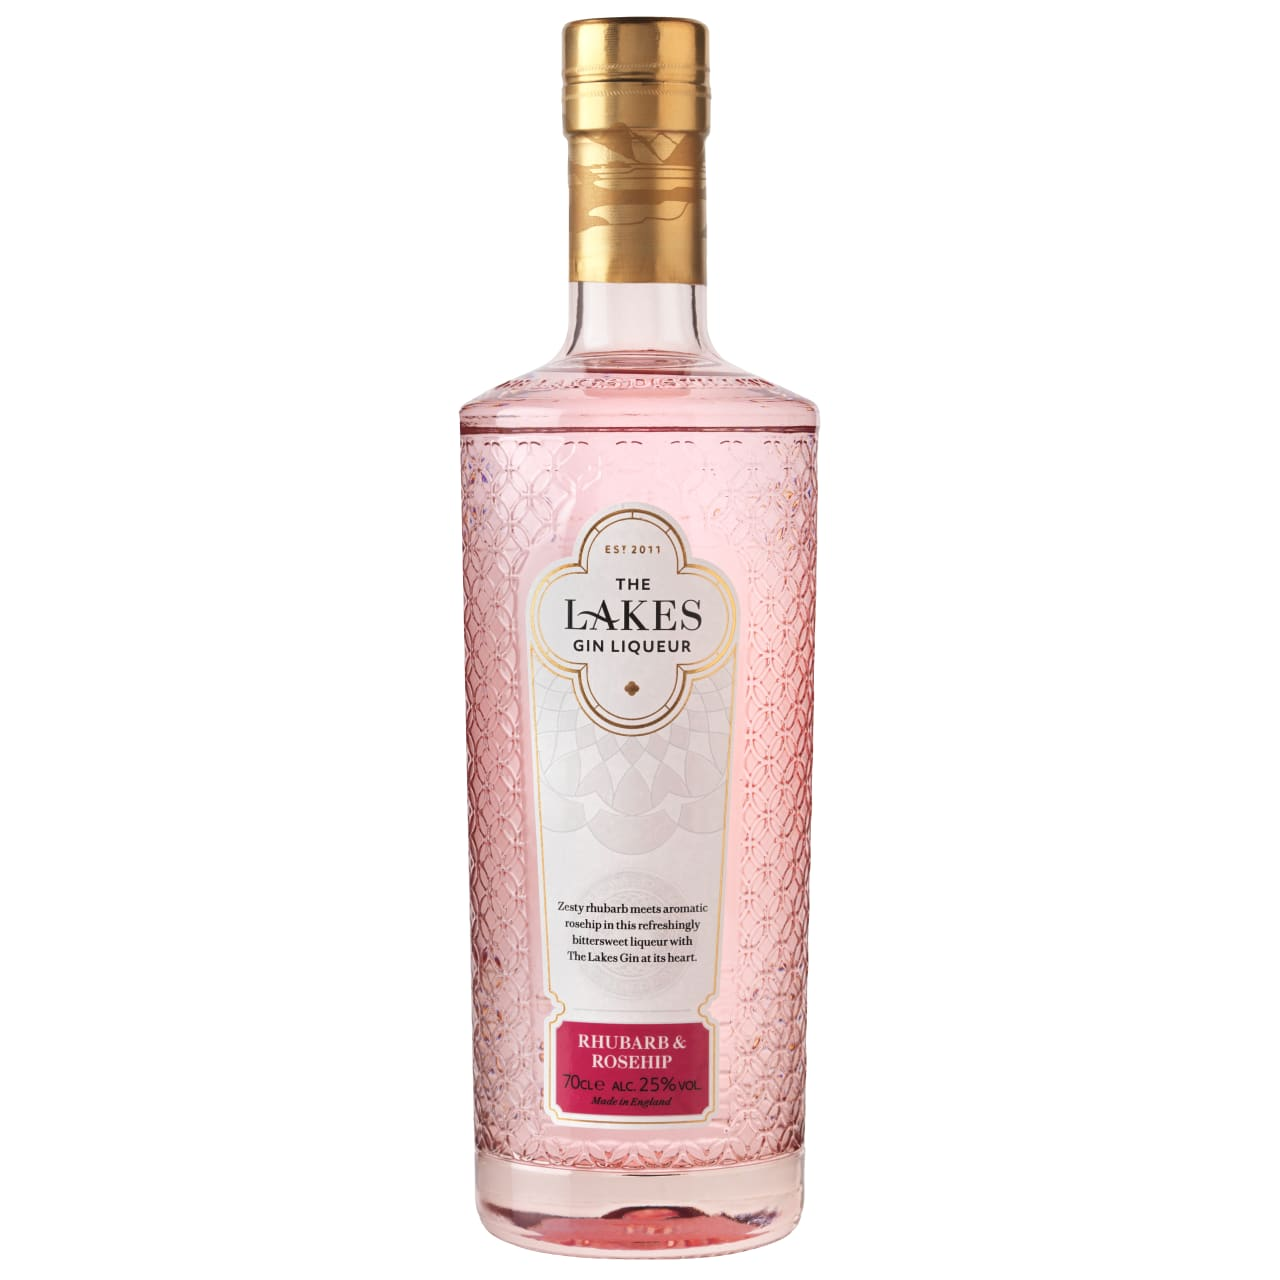 Product Image - The Lakes Rhubarb & Rosehip Gin Liqueur